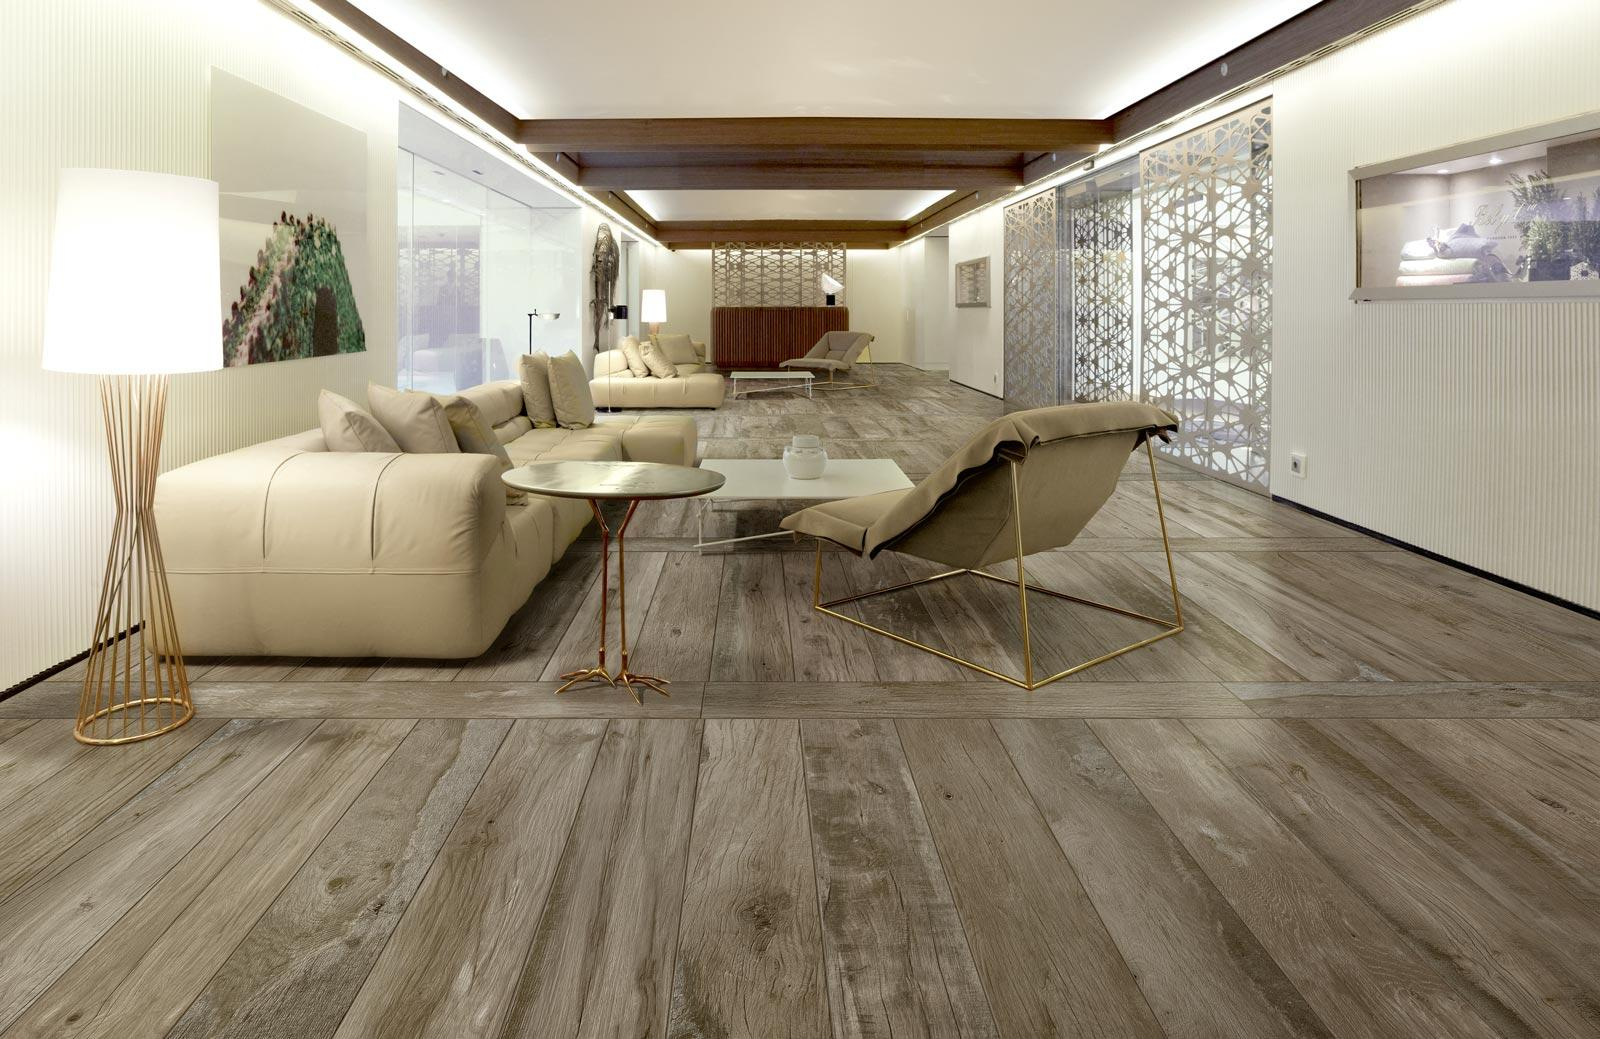 Woodmania Porcelain Stoneware Parquet Effect Ragno - Carrelage i feel wood